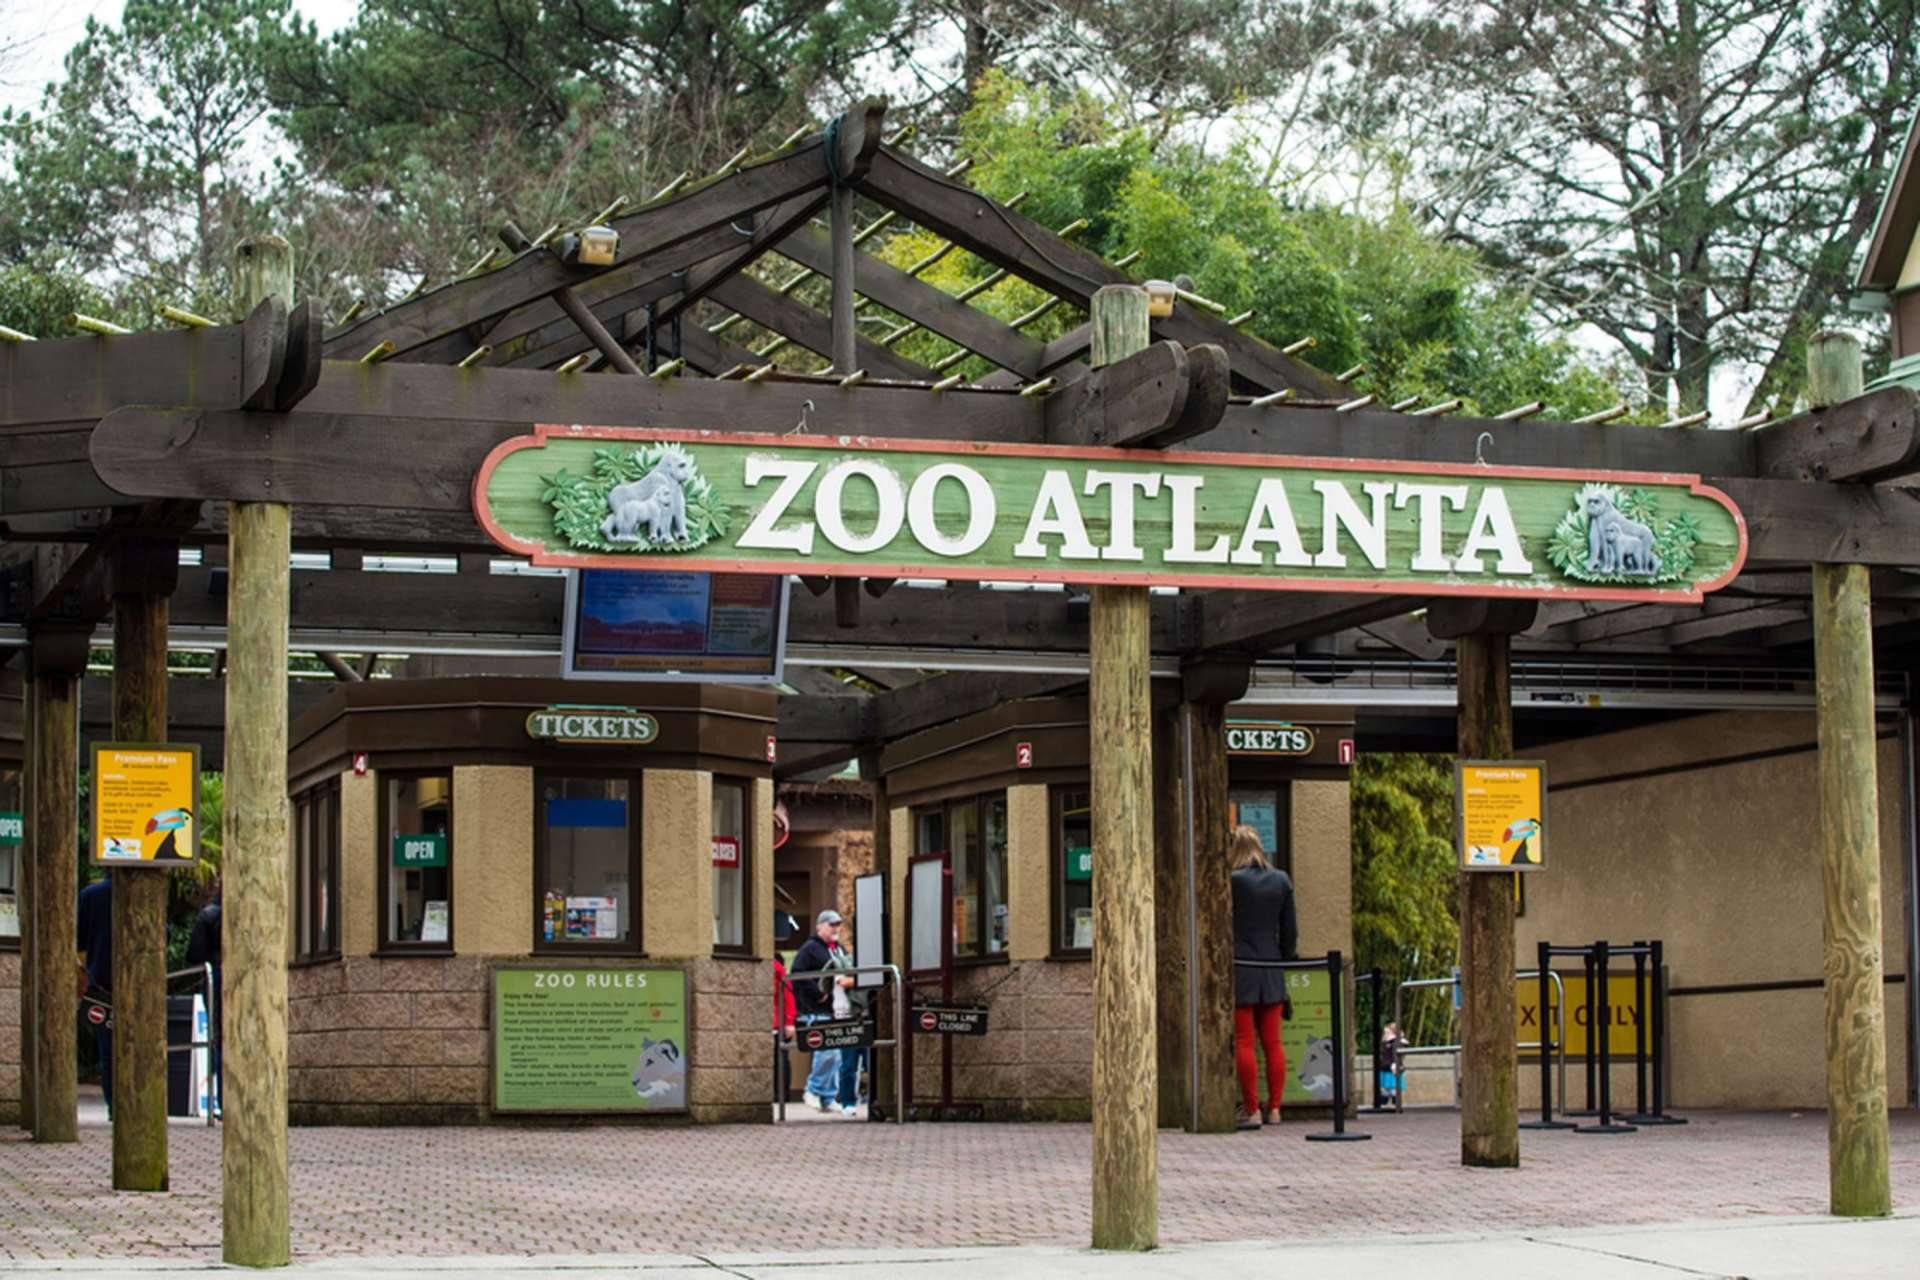 Attention, Zoo Atlanta fans: You have a few ways to check out the pandas & my favorite, the red panda, for free or on the cheap. For a limited time, you can snag discount tickets, no coupon code required.